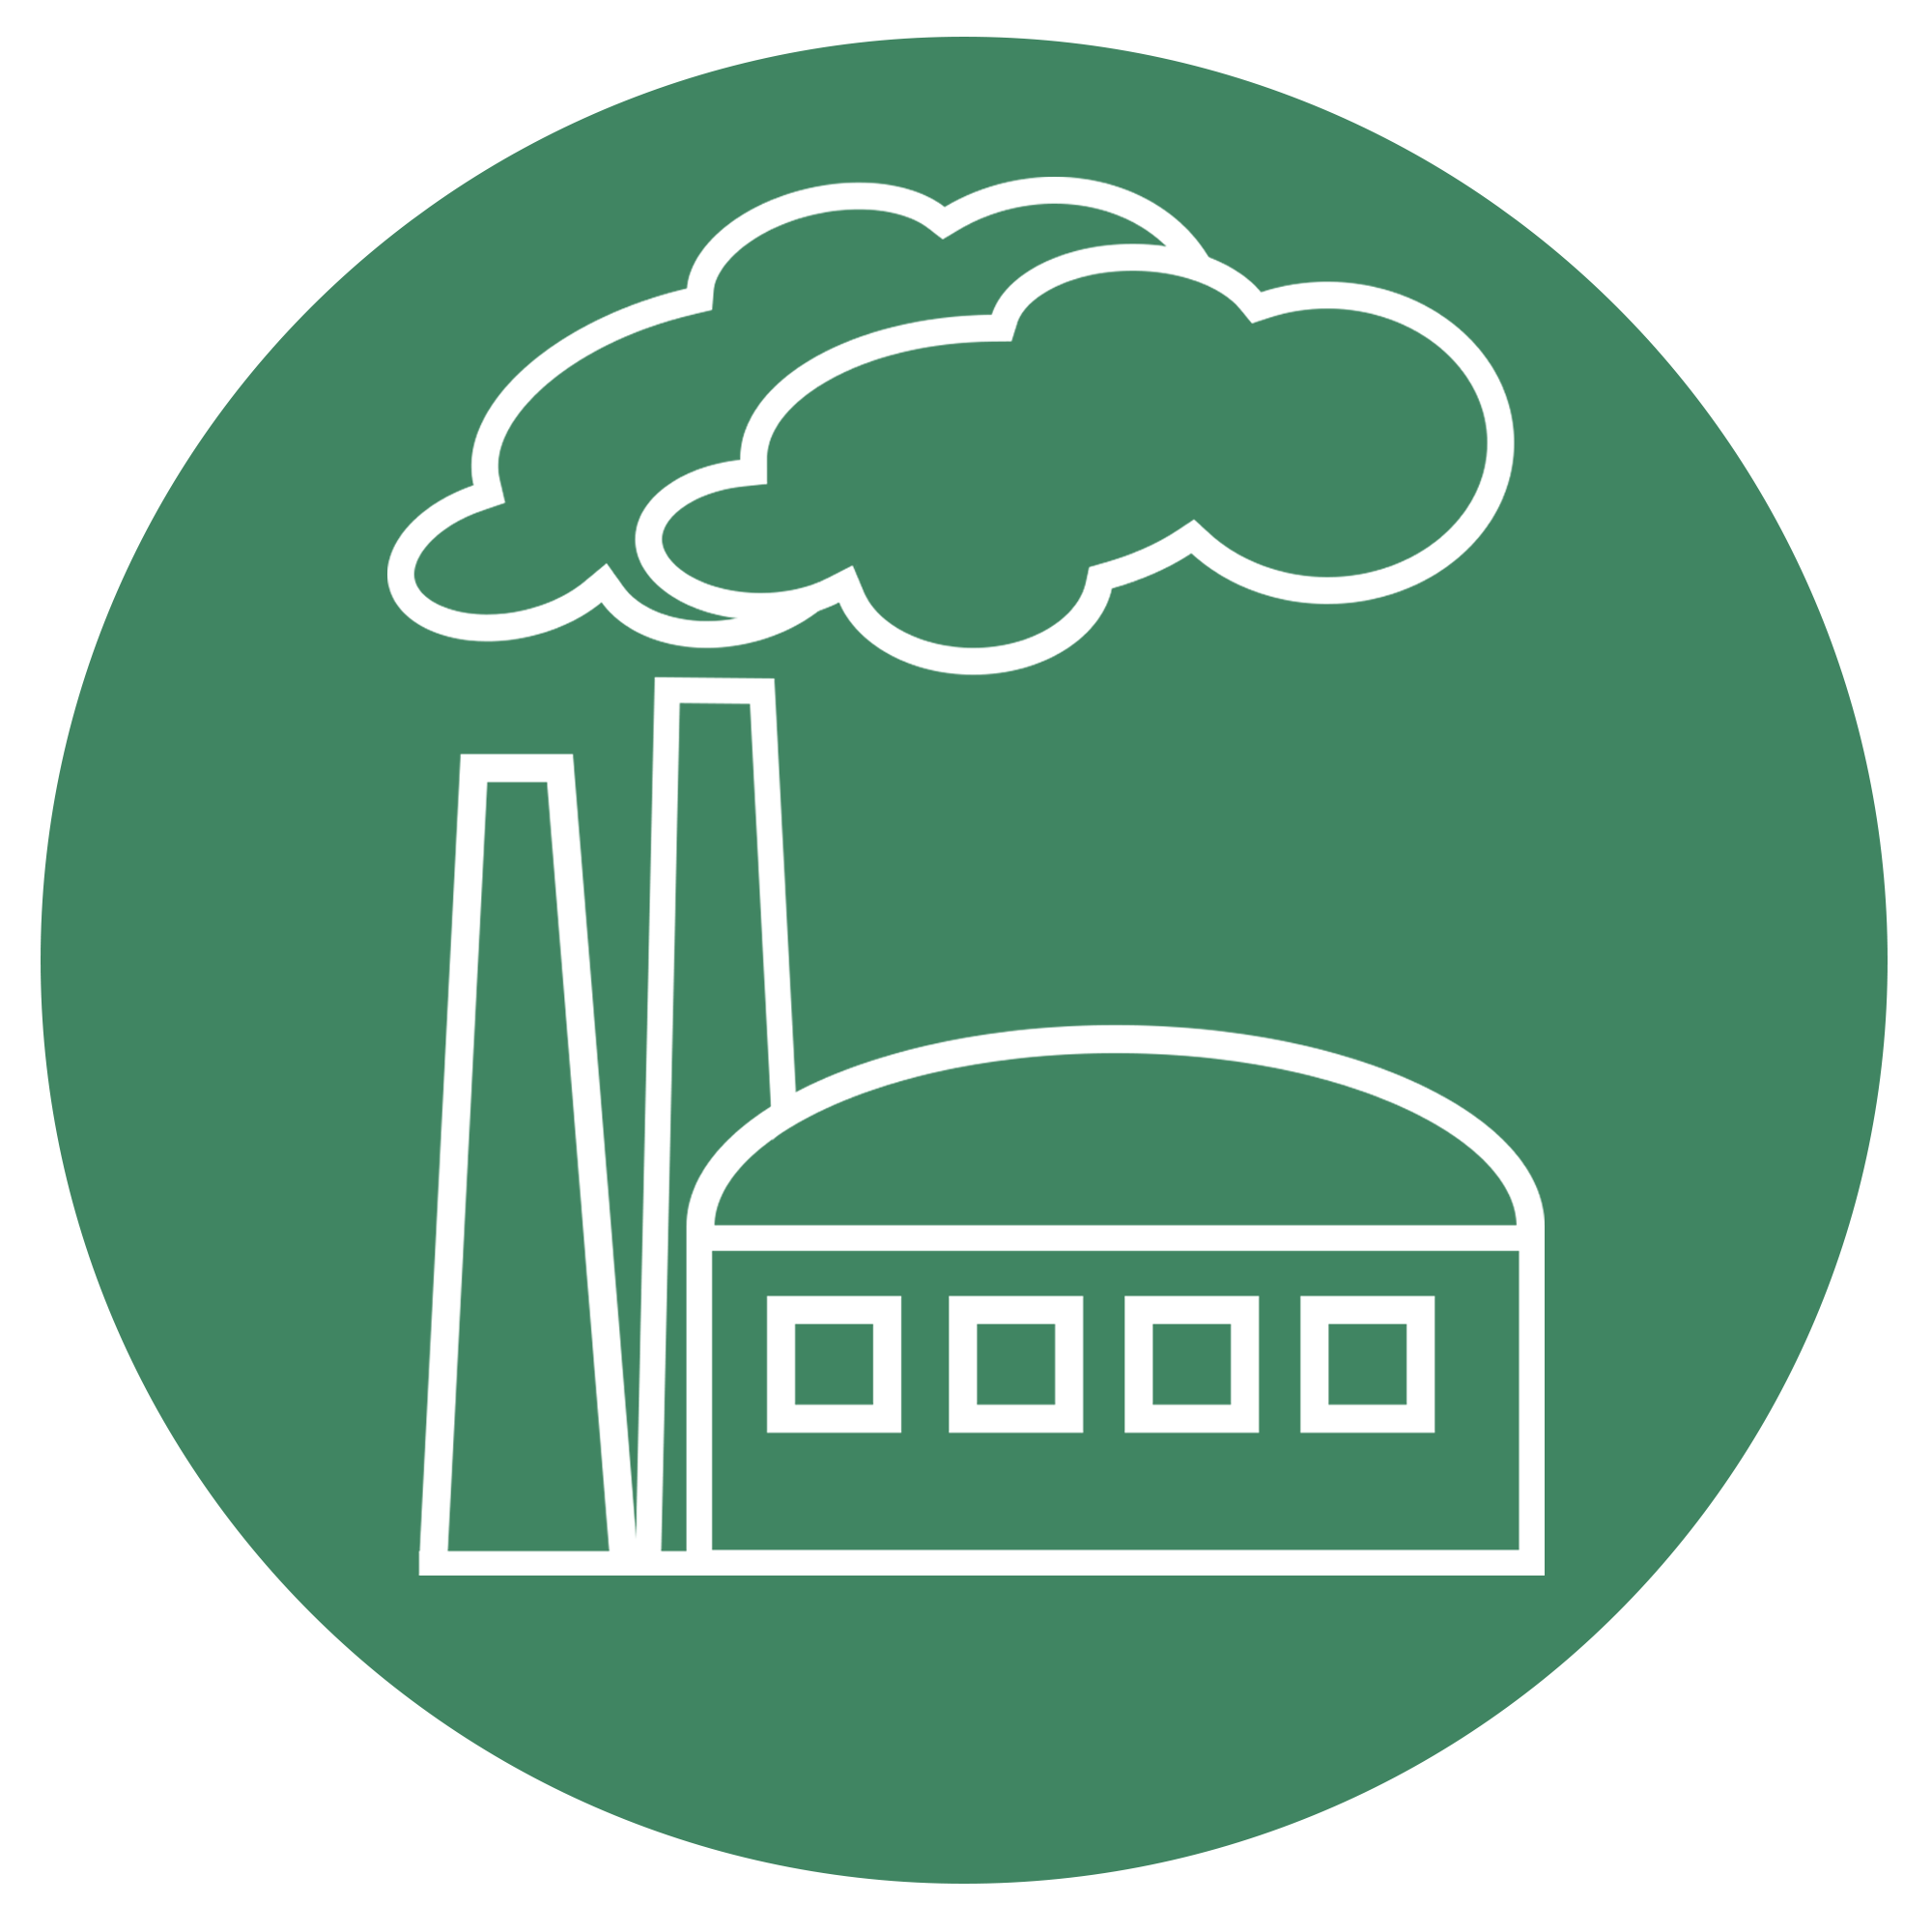 White emissions line art on green background representing carbon offsets